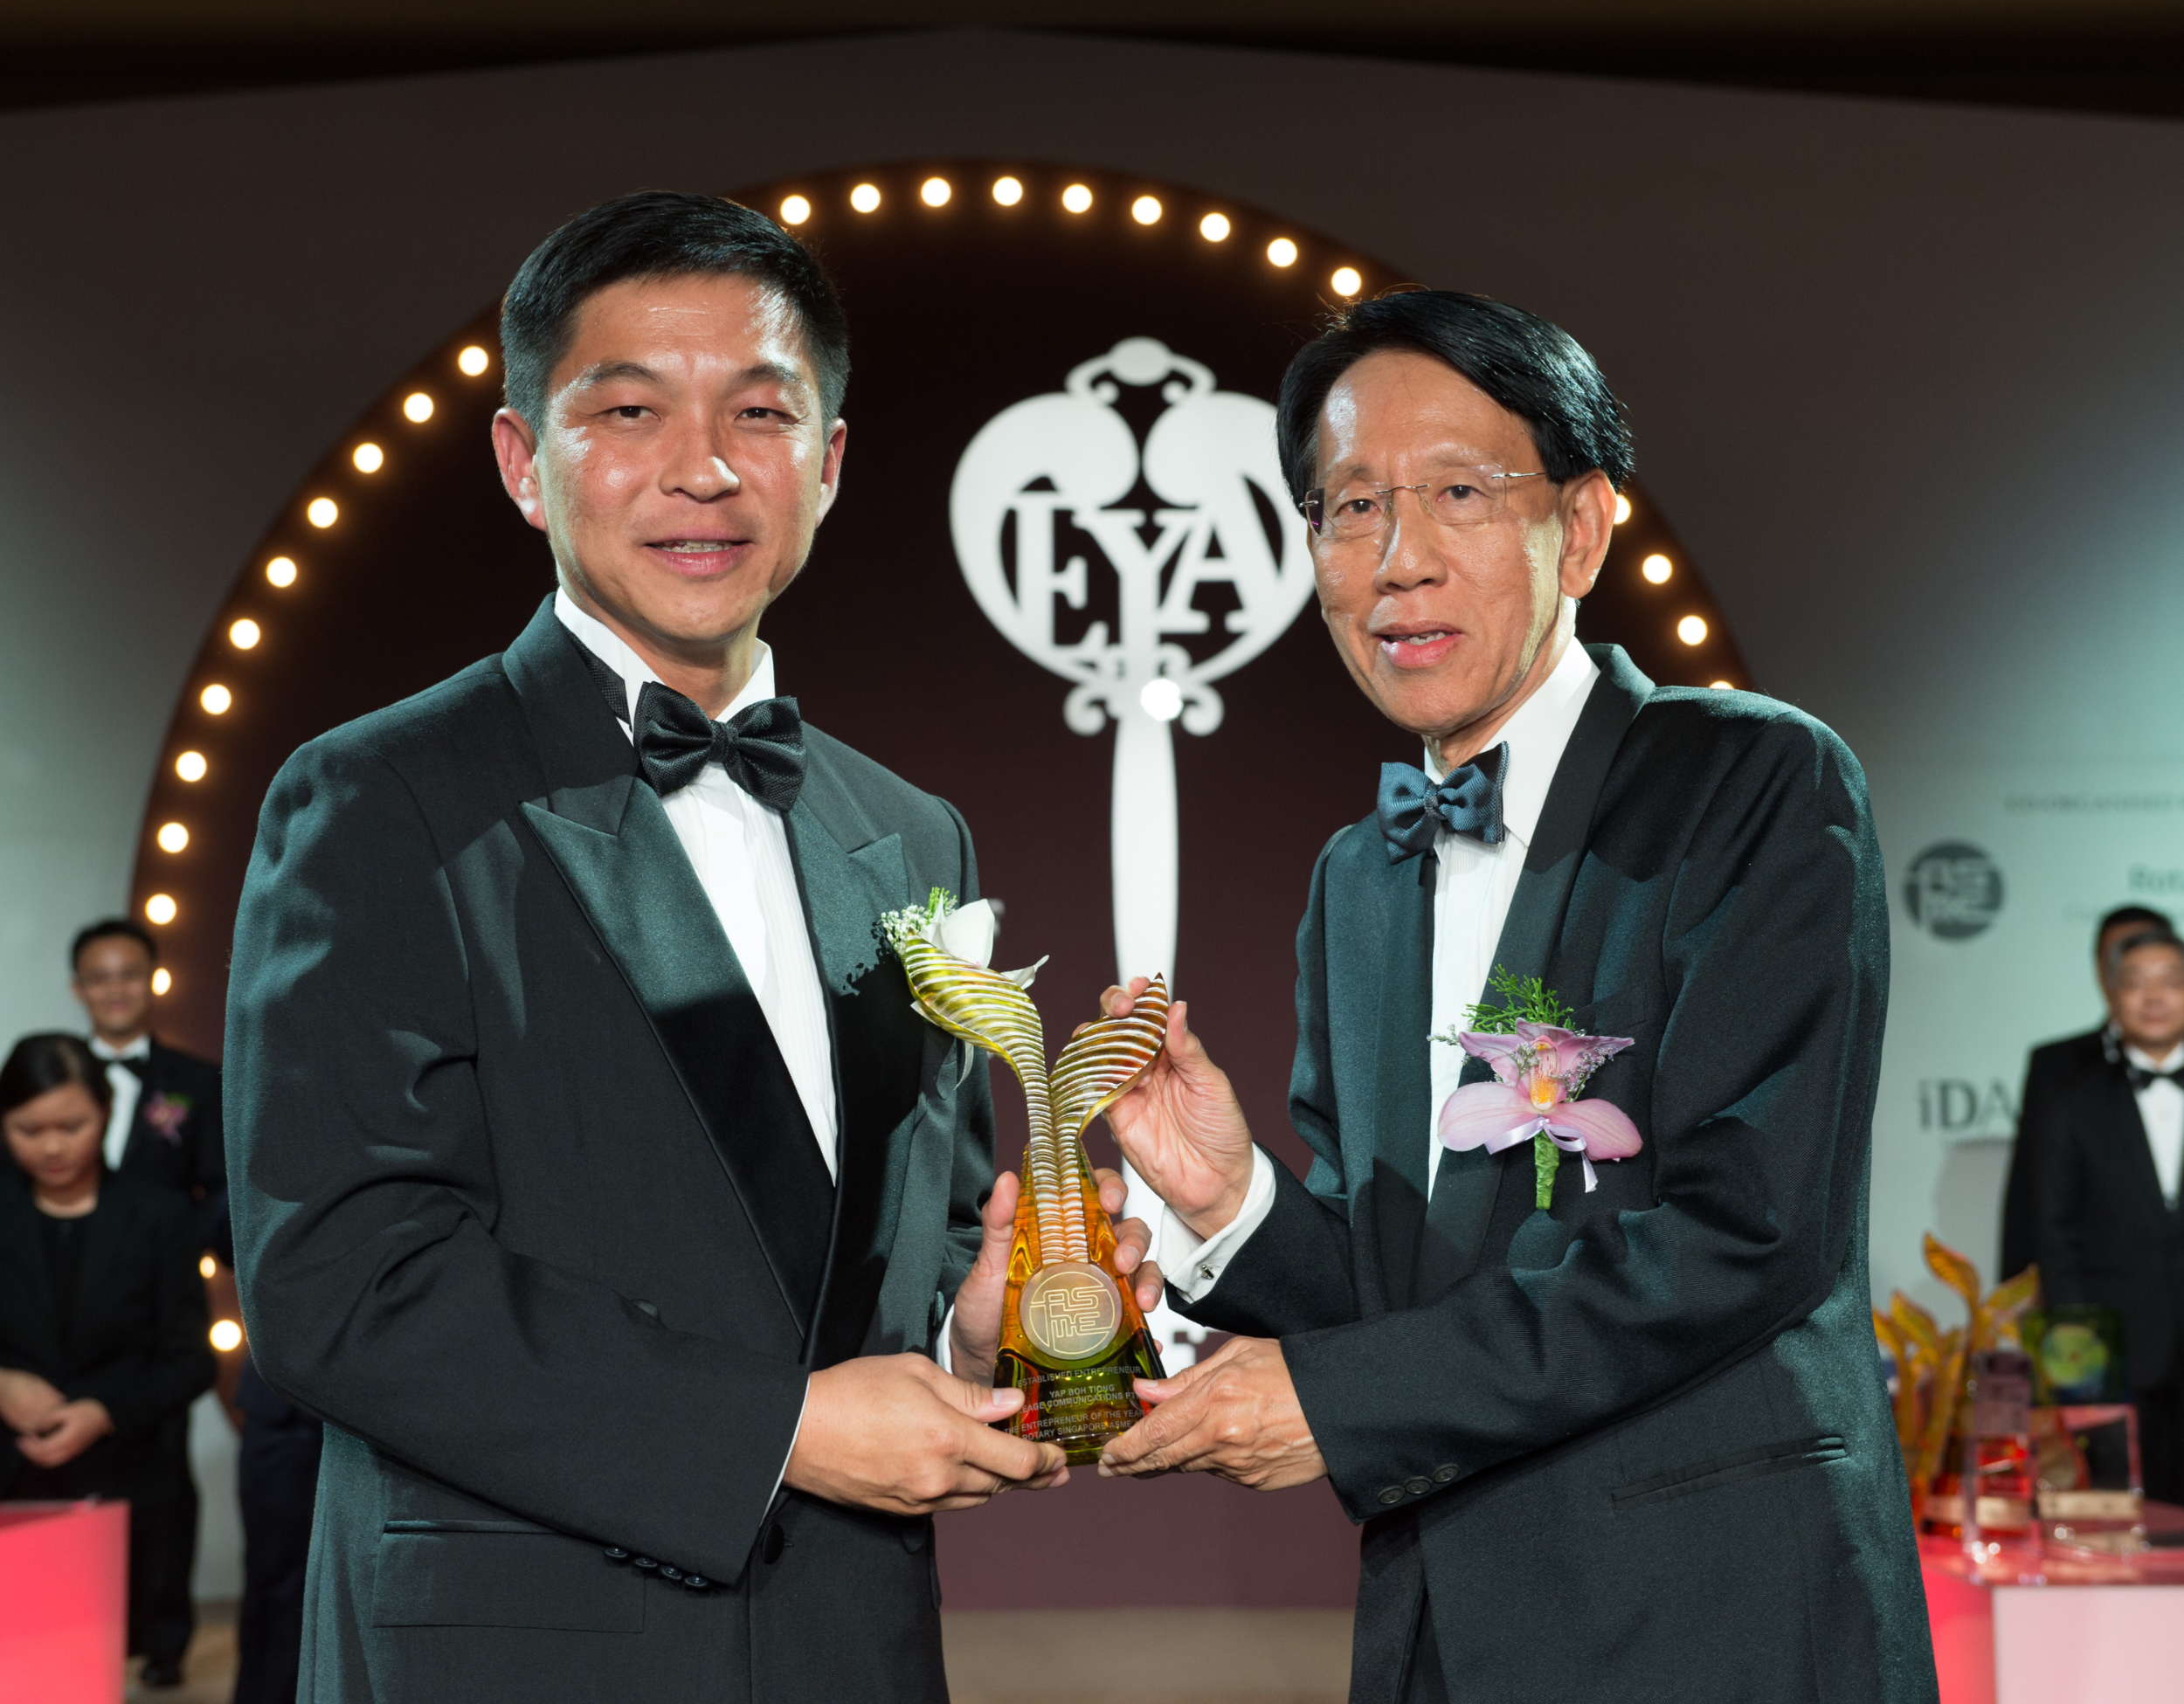 Chairman Of Mileage Communications Group Awarded Established Entrepreneur Of The Year